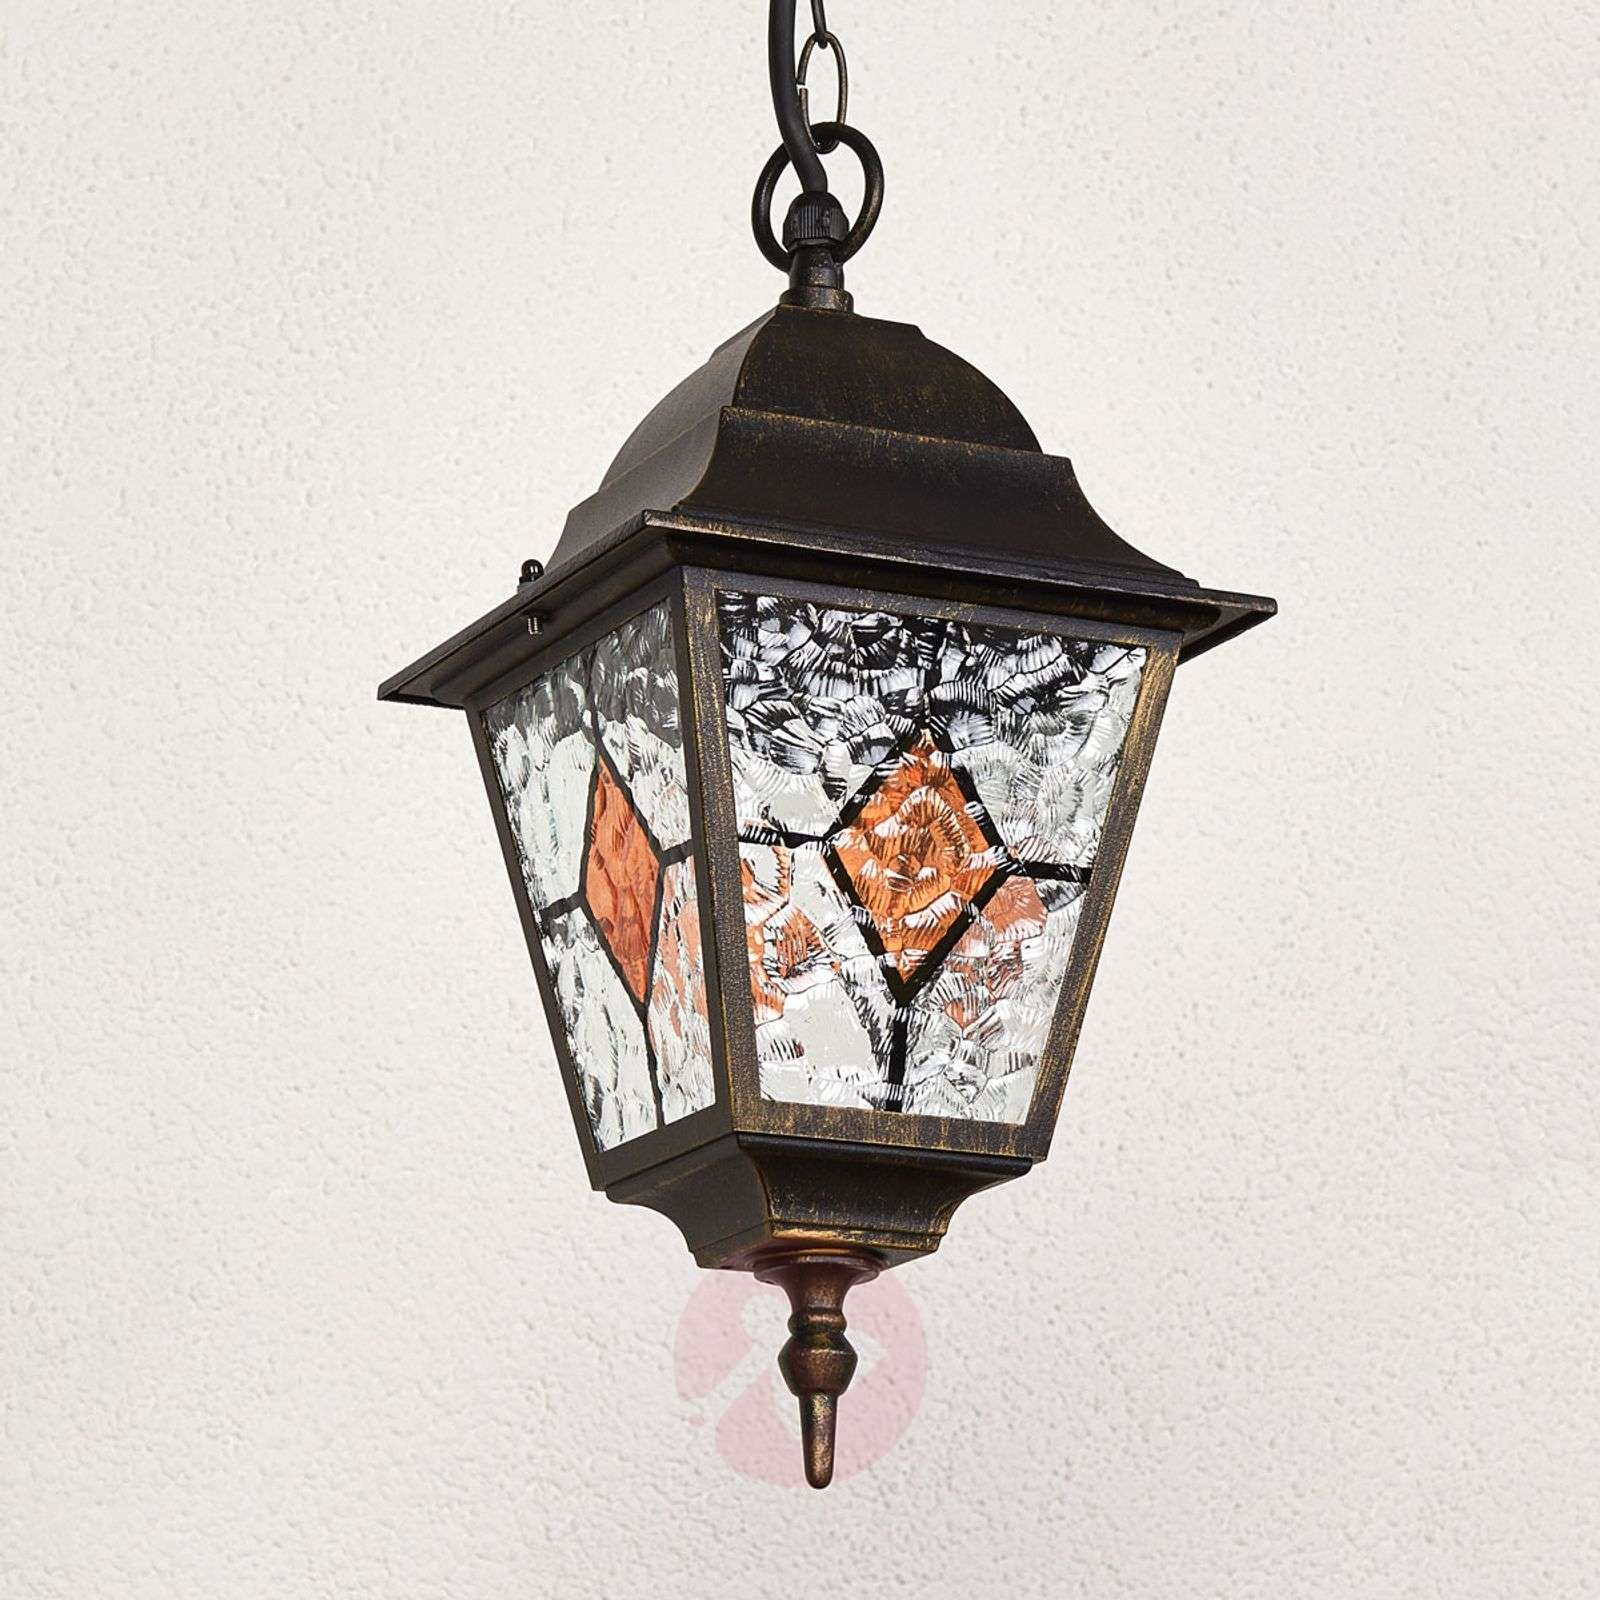 ... With Lead Glass The Outdoor Hanging Light Jason 1507258 01 ...